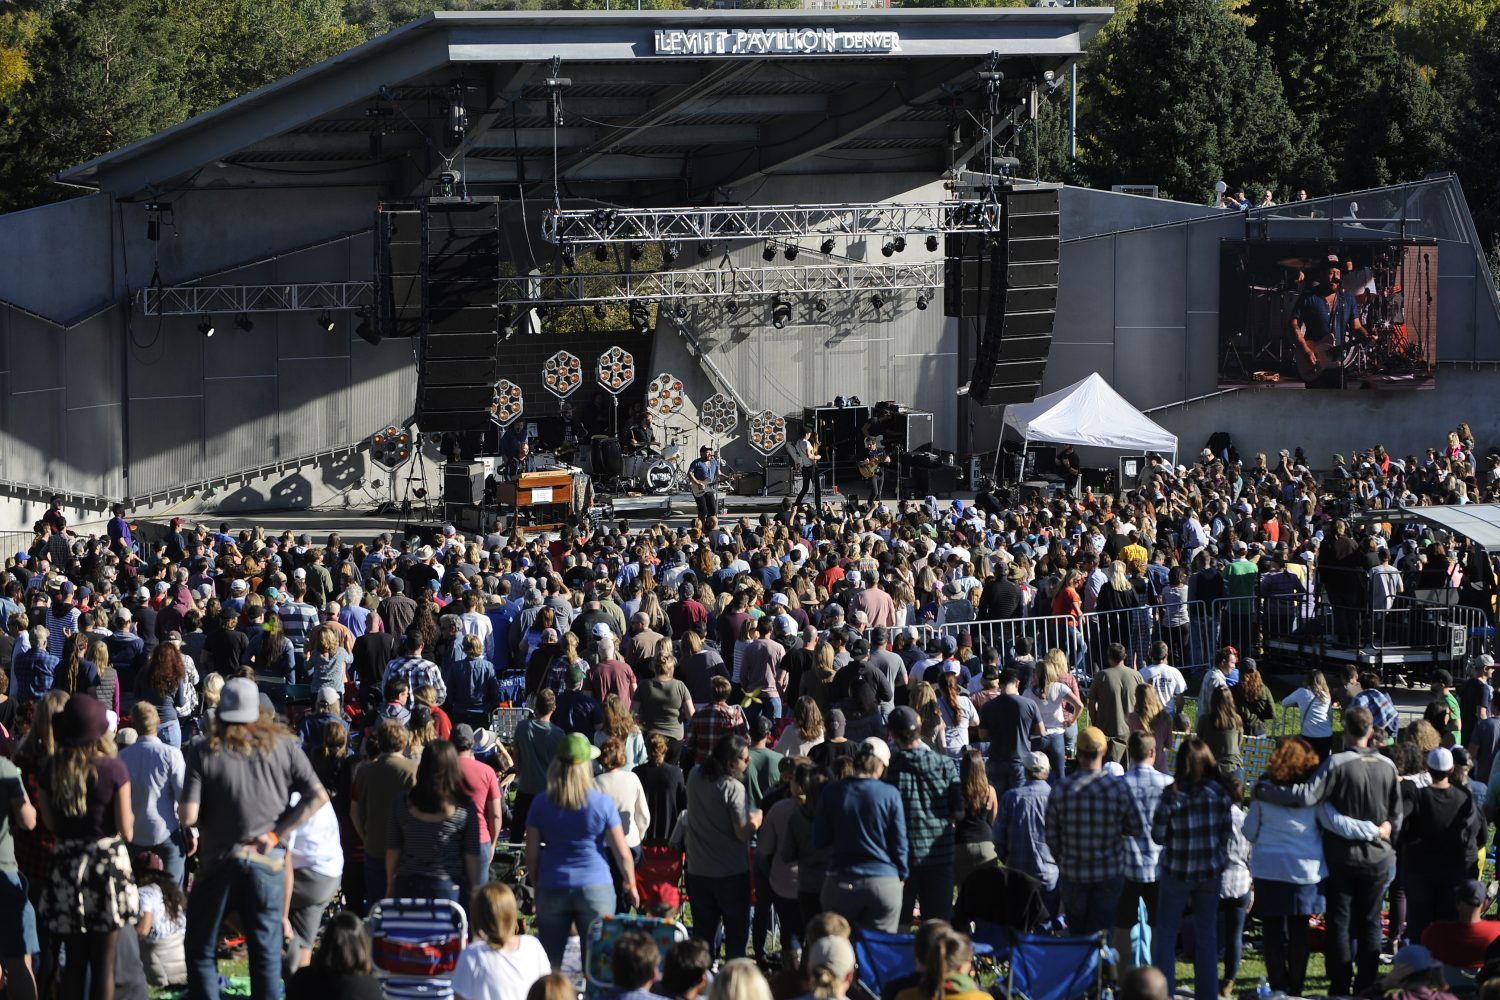 Nathaniel Rateliff & The Night Sweats, along with Rateliff's foundation, The Marigold Project, host a day of events to support the prevention of gun violence including a concert at the Levitt Pavilion October 13, 2018 in Denver. (Kathryn Scott, Special to The Denver Post)